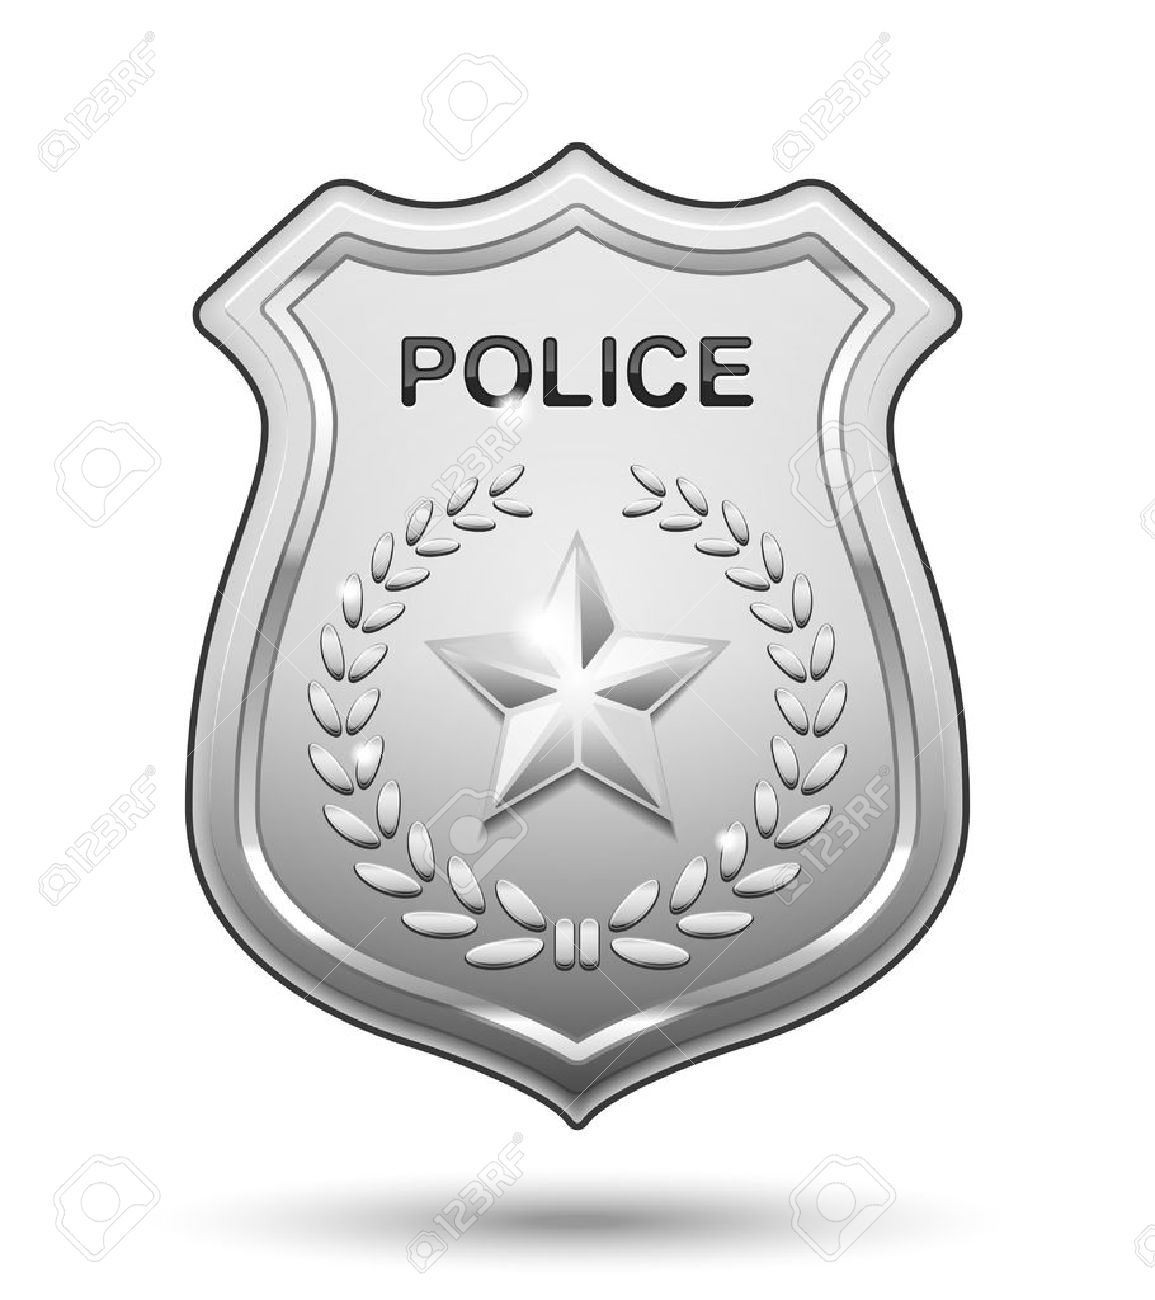 police badge vector police badge isolated on white background illustration